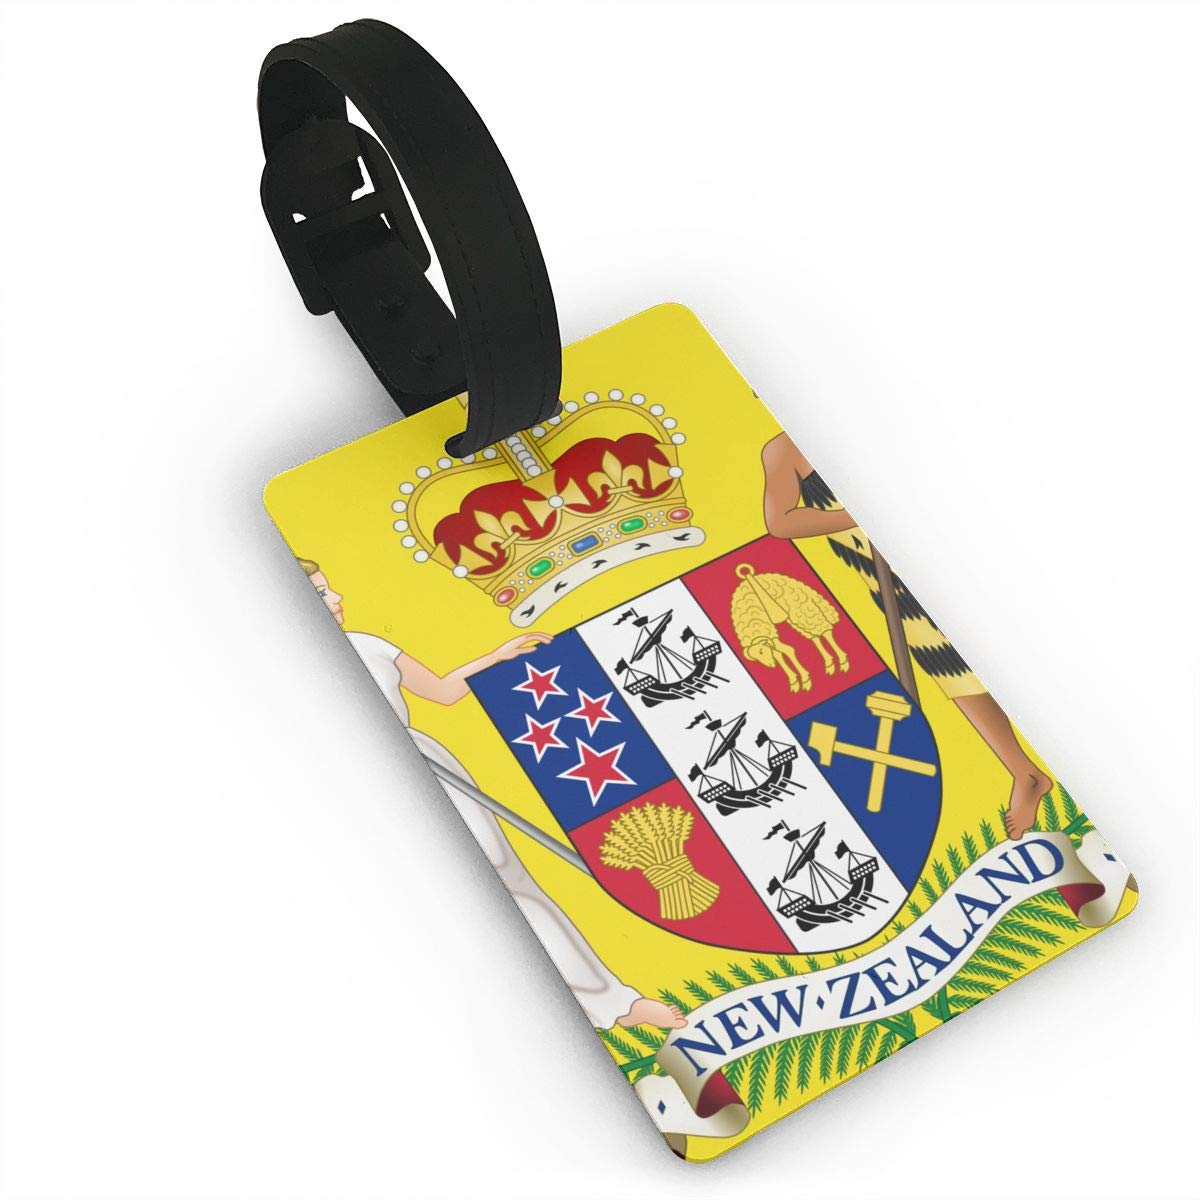 KODW12 Coat of Arms of New Zealand Luggage Tag Travel Bag Labels Suitcase Bag Tag Name Address Cards